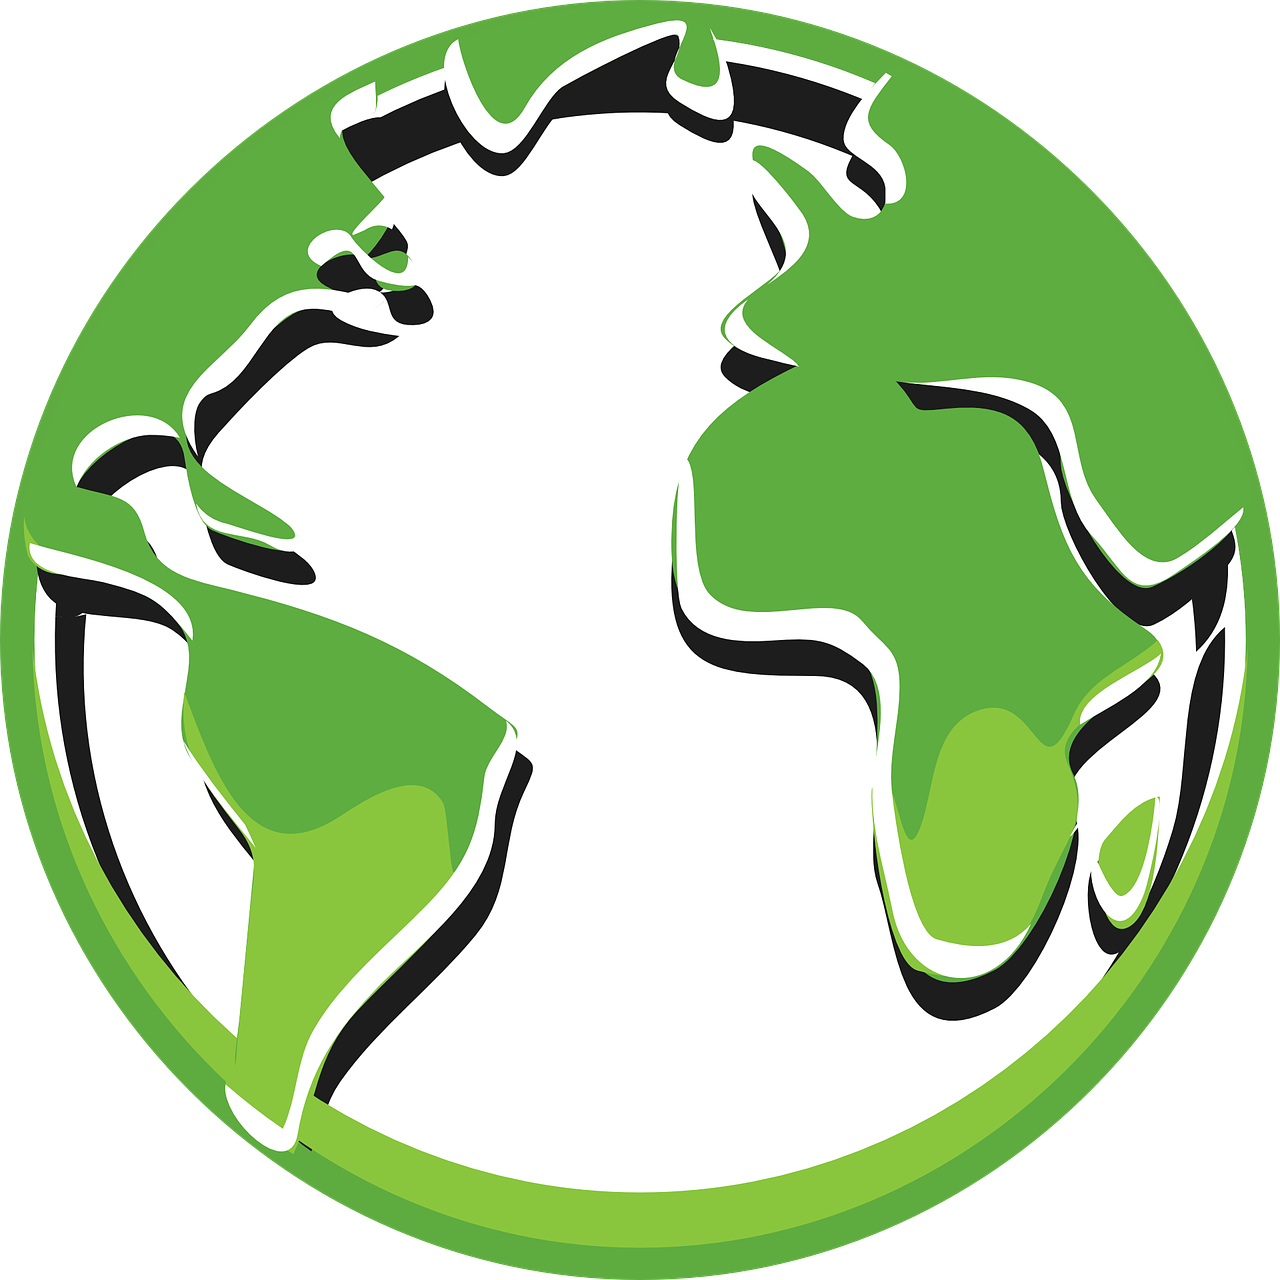 An artist's rendering of the earth. All landmasses are green.